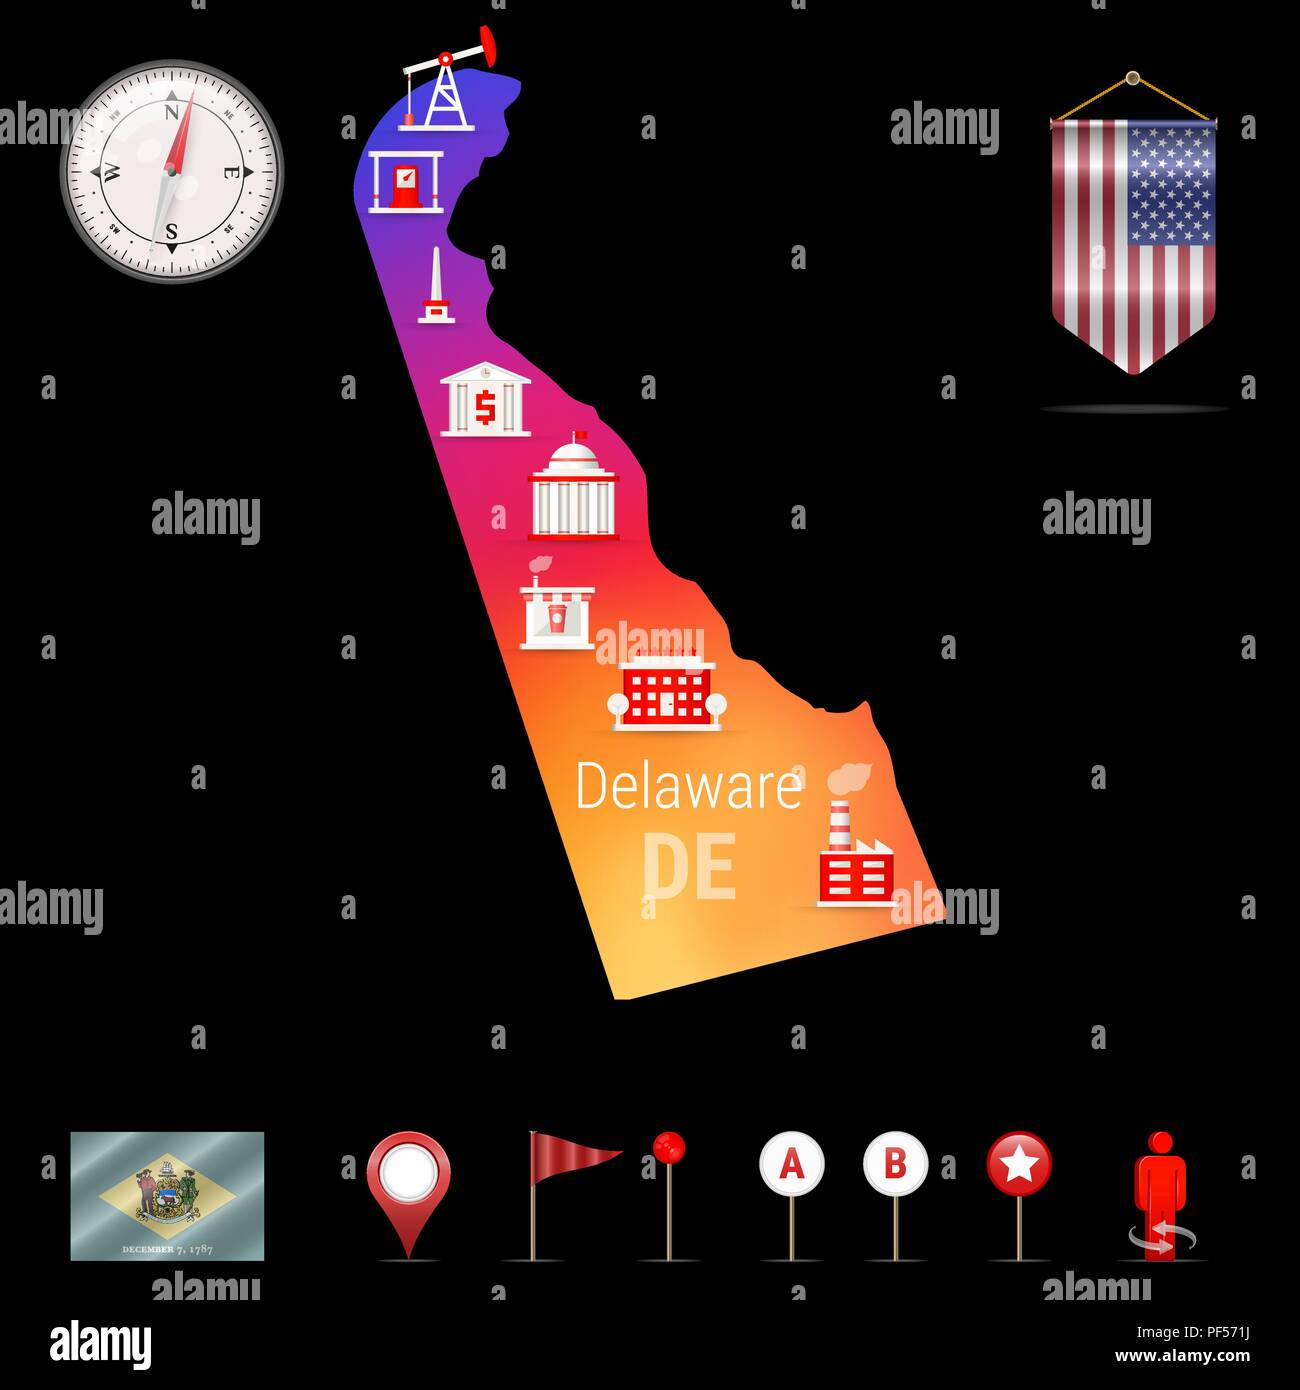 Delaware Vector Map, Night View. Compass Icon, Map Navigation Elements. Pennant Flag of the United States. Vector Flag of Delaware. Various Industries, Economic Geography Icons. - Stock Vector